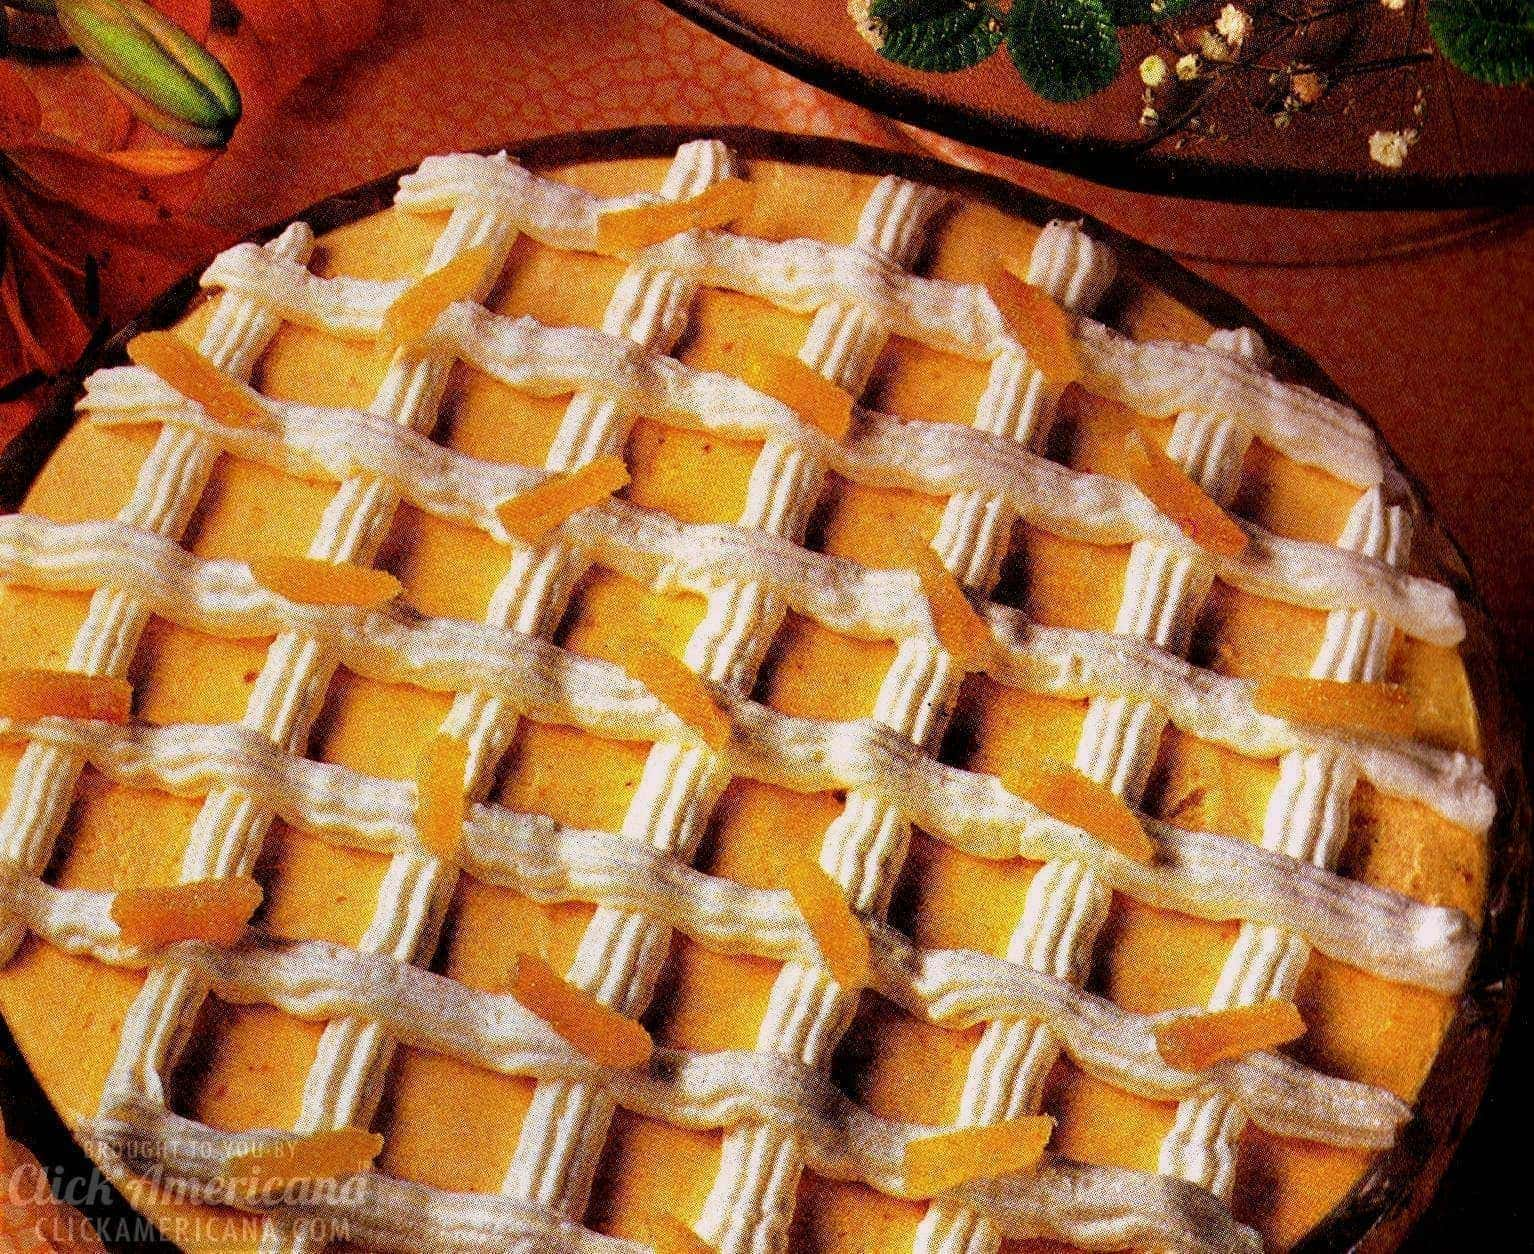 Pumpkin, rum, cream cheese and other good stuff team up to make this memorable velvet mousse (1977)